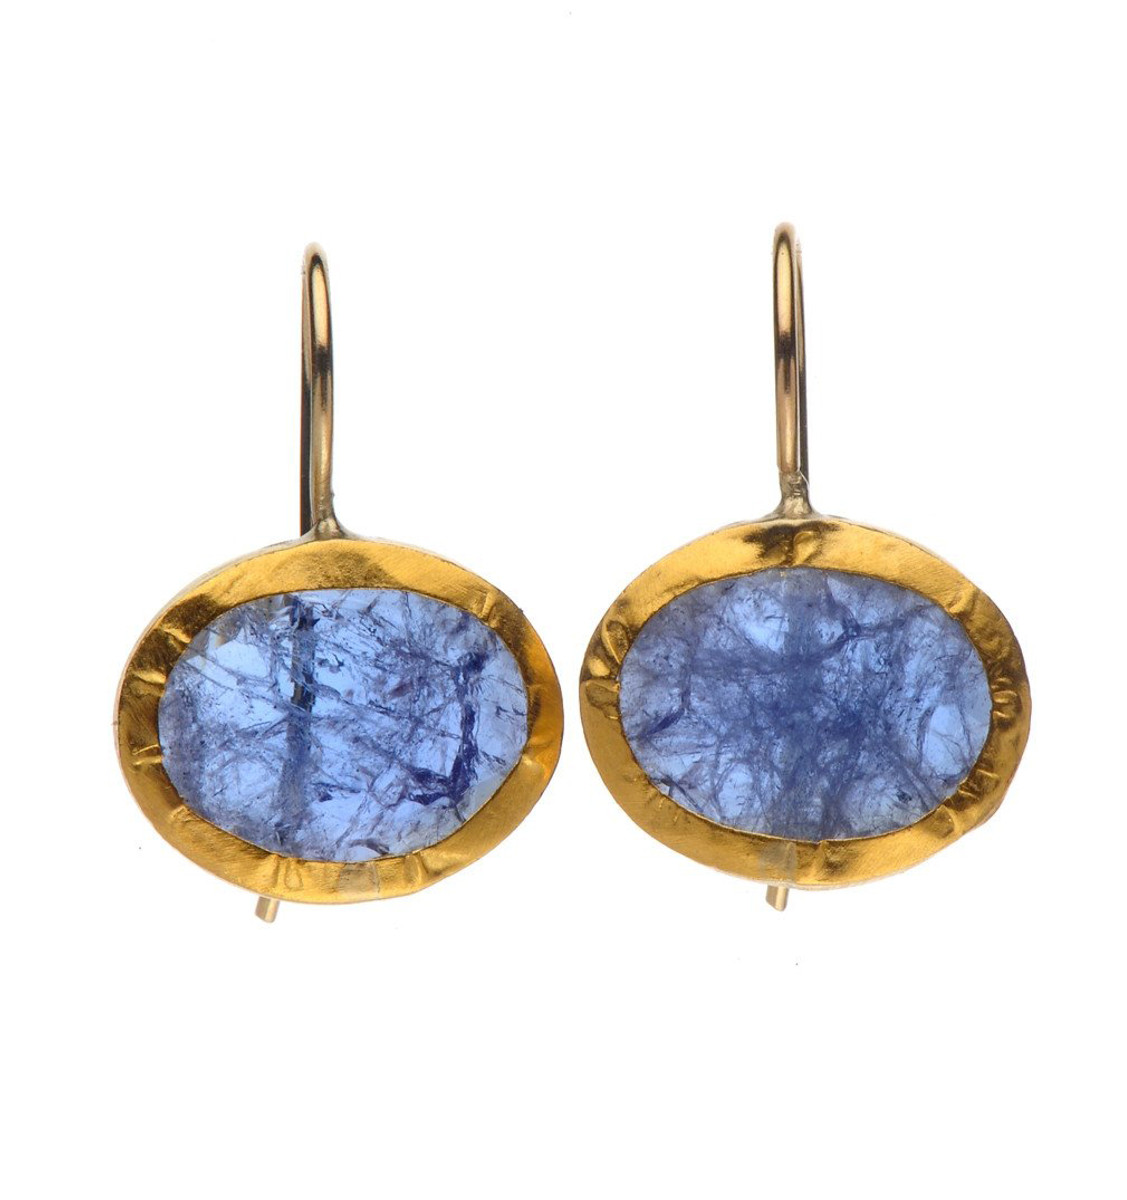 Tanzania Earrings by Nava Zahavi - New Arrival